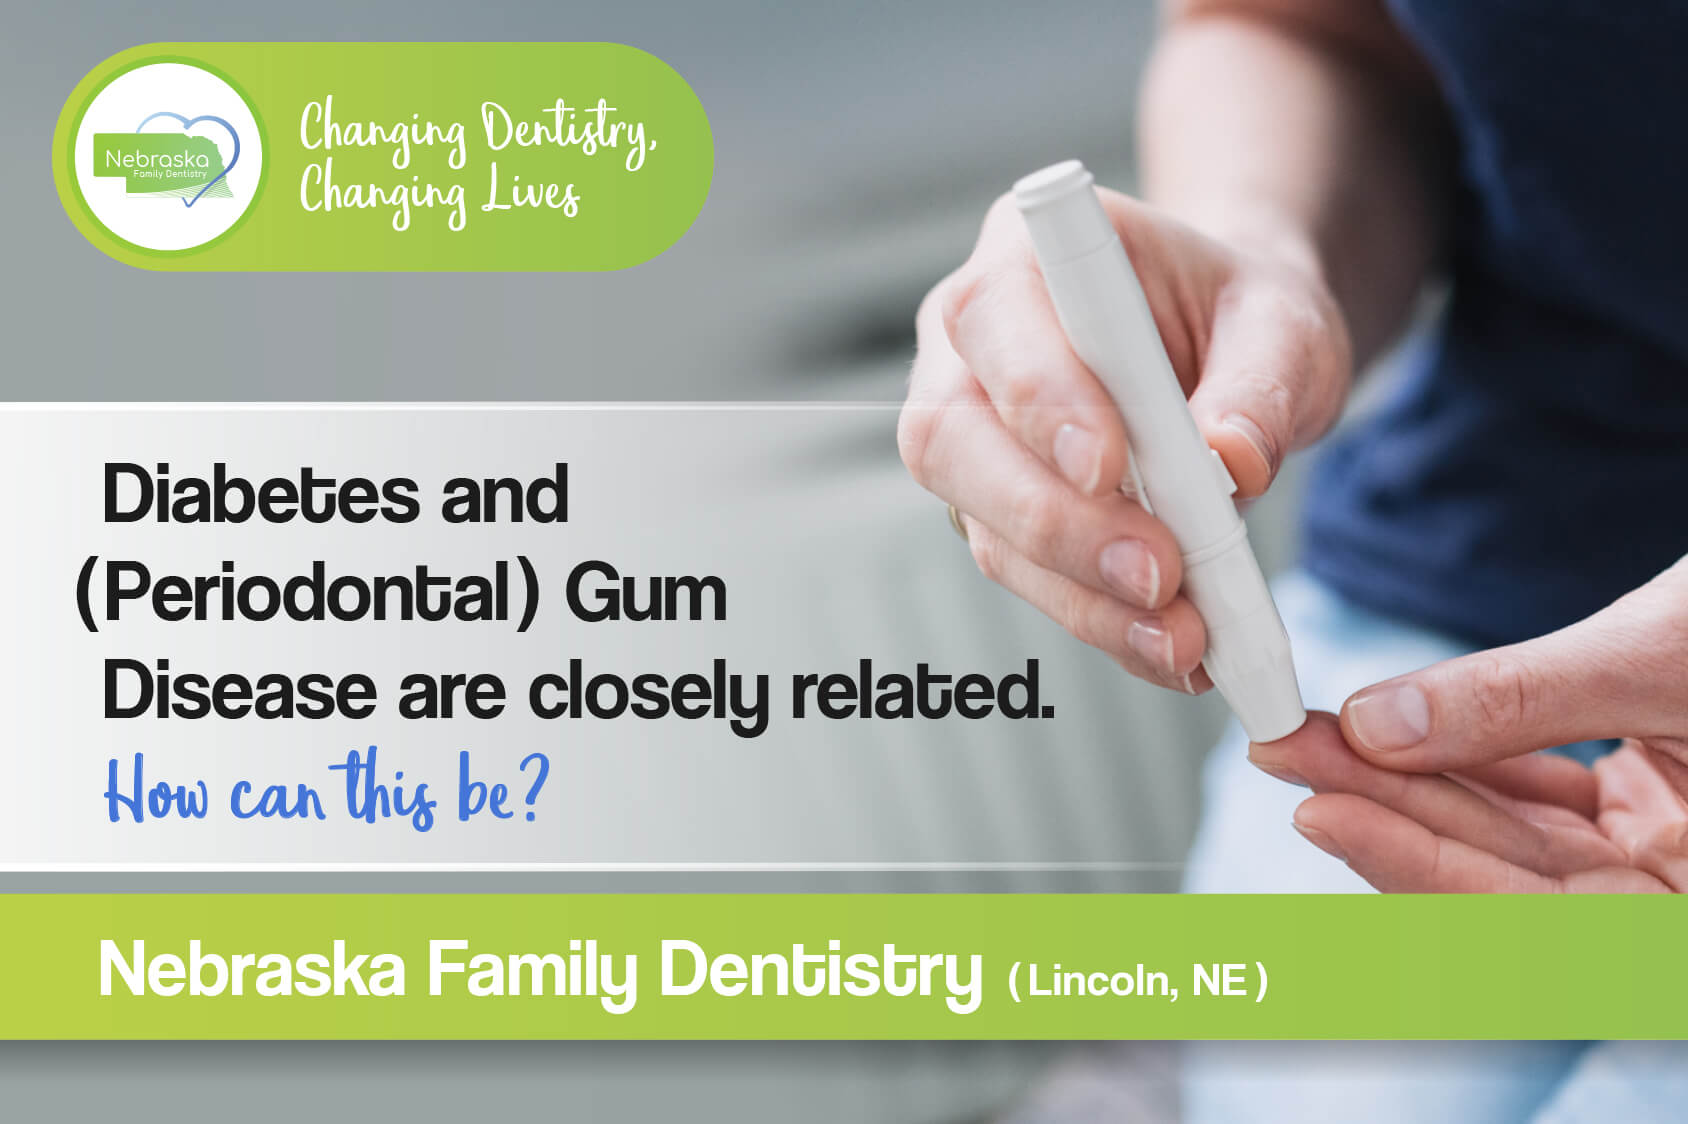 diabetes and periodontal gum disease are closely related